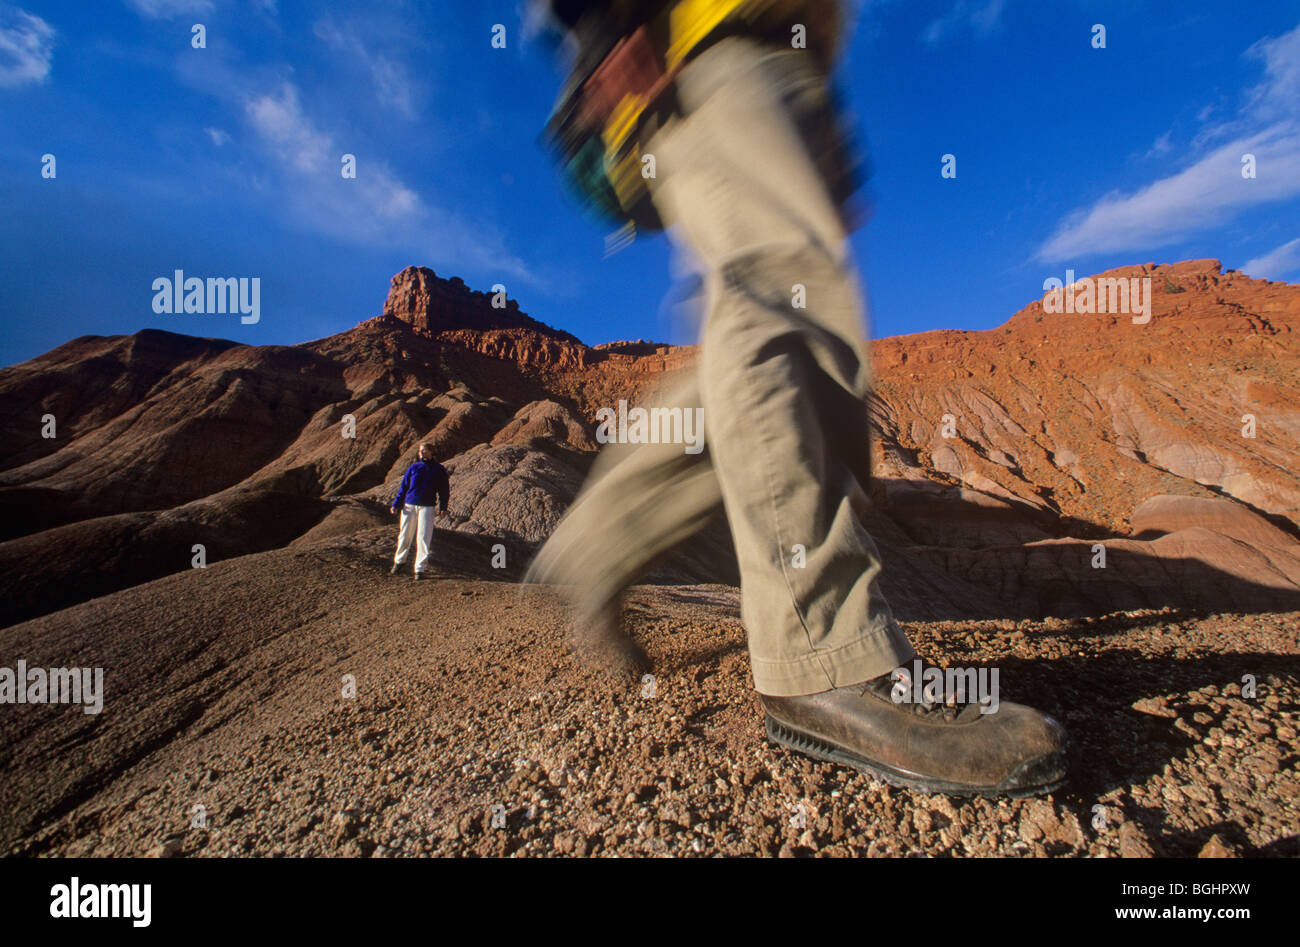 Hiking in badlands near Pahreah, Grand Staircase-Escalante National Monument, Kanab, Utah,USA - Stock Image